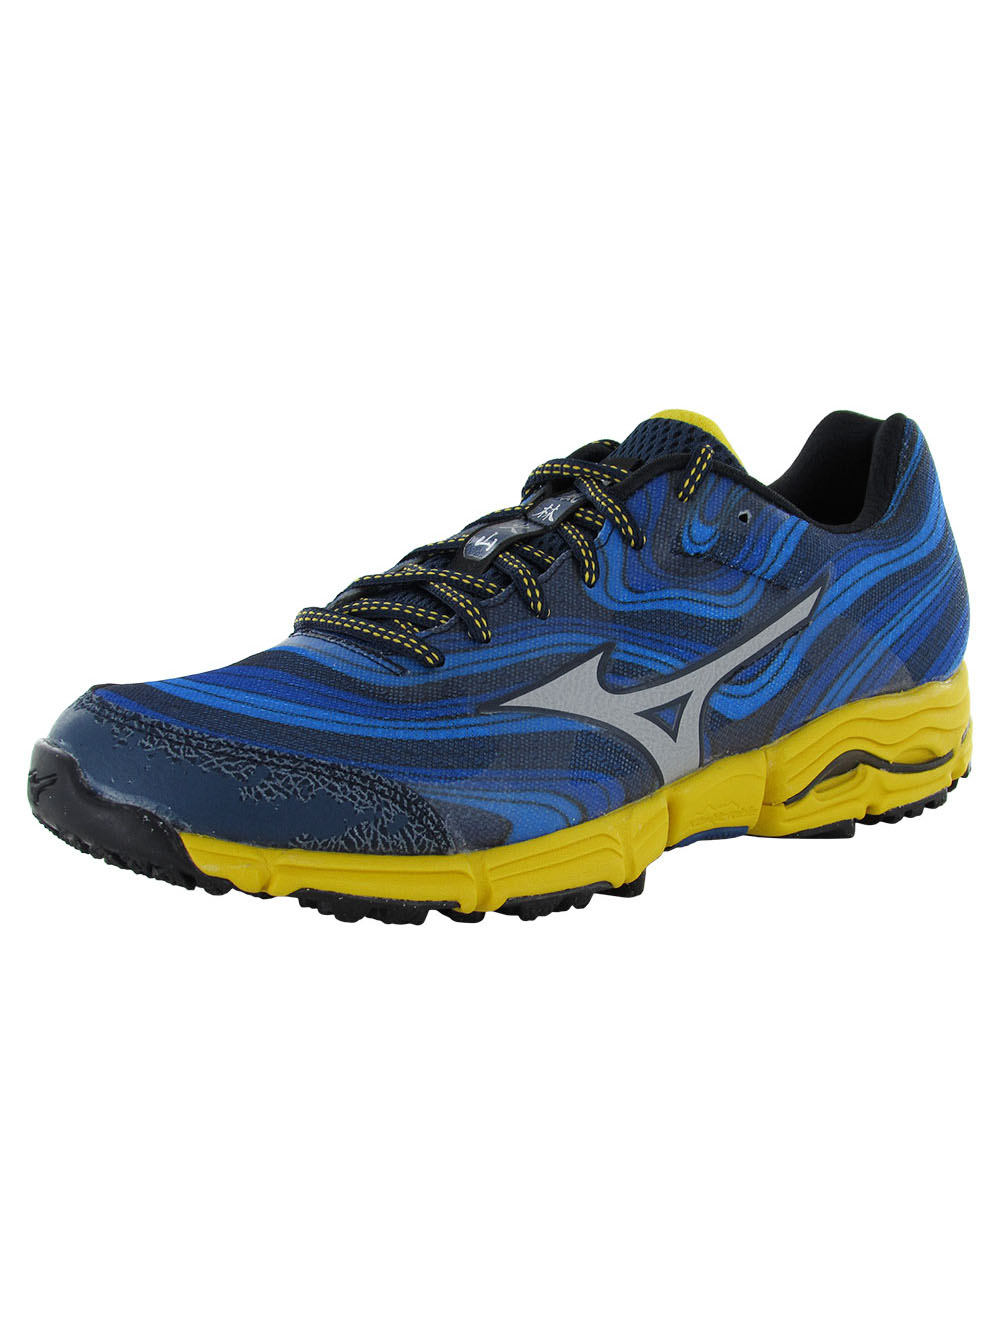 Mizuno Mens Wave Kazan Running Sneaker Shoe by Mizuno